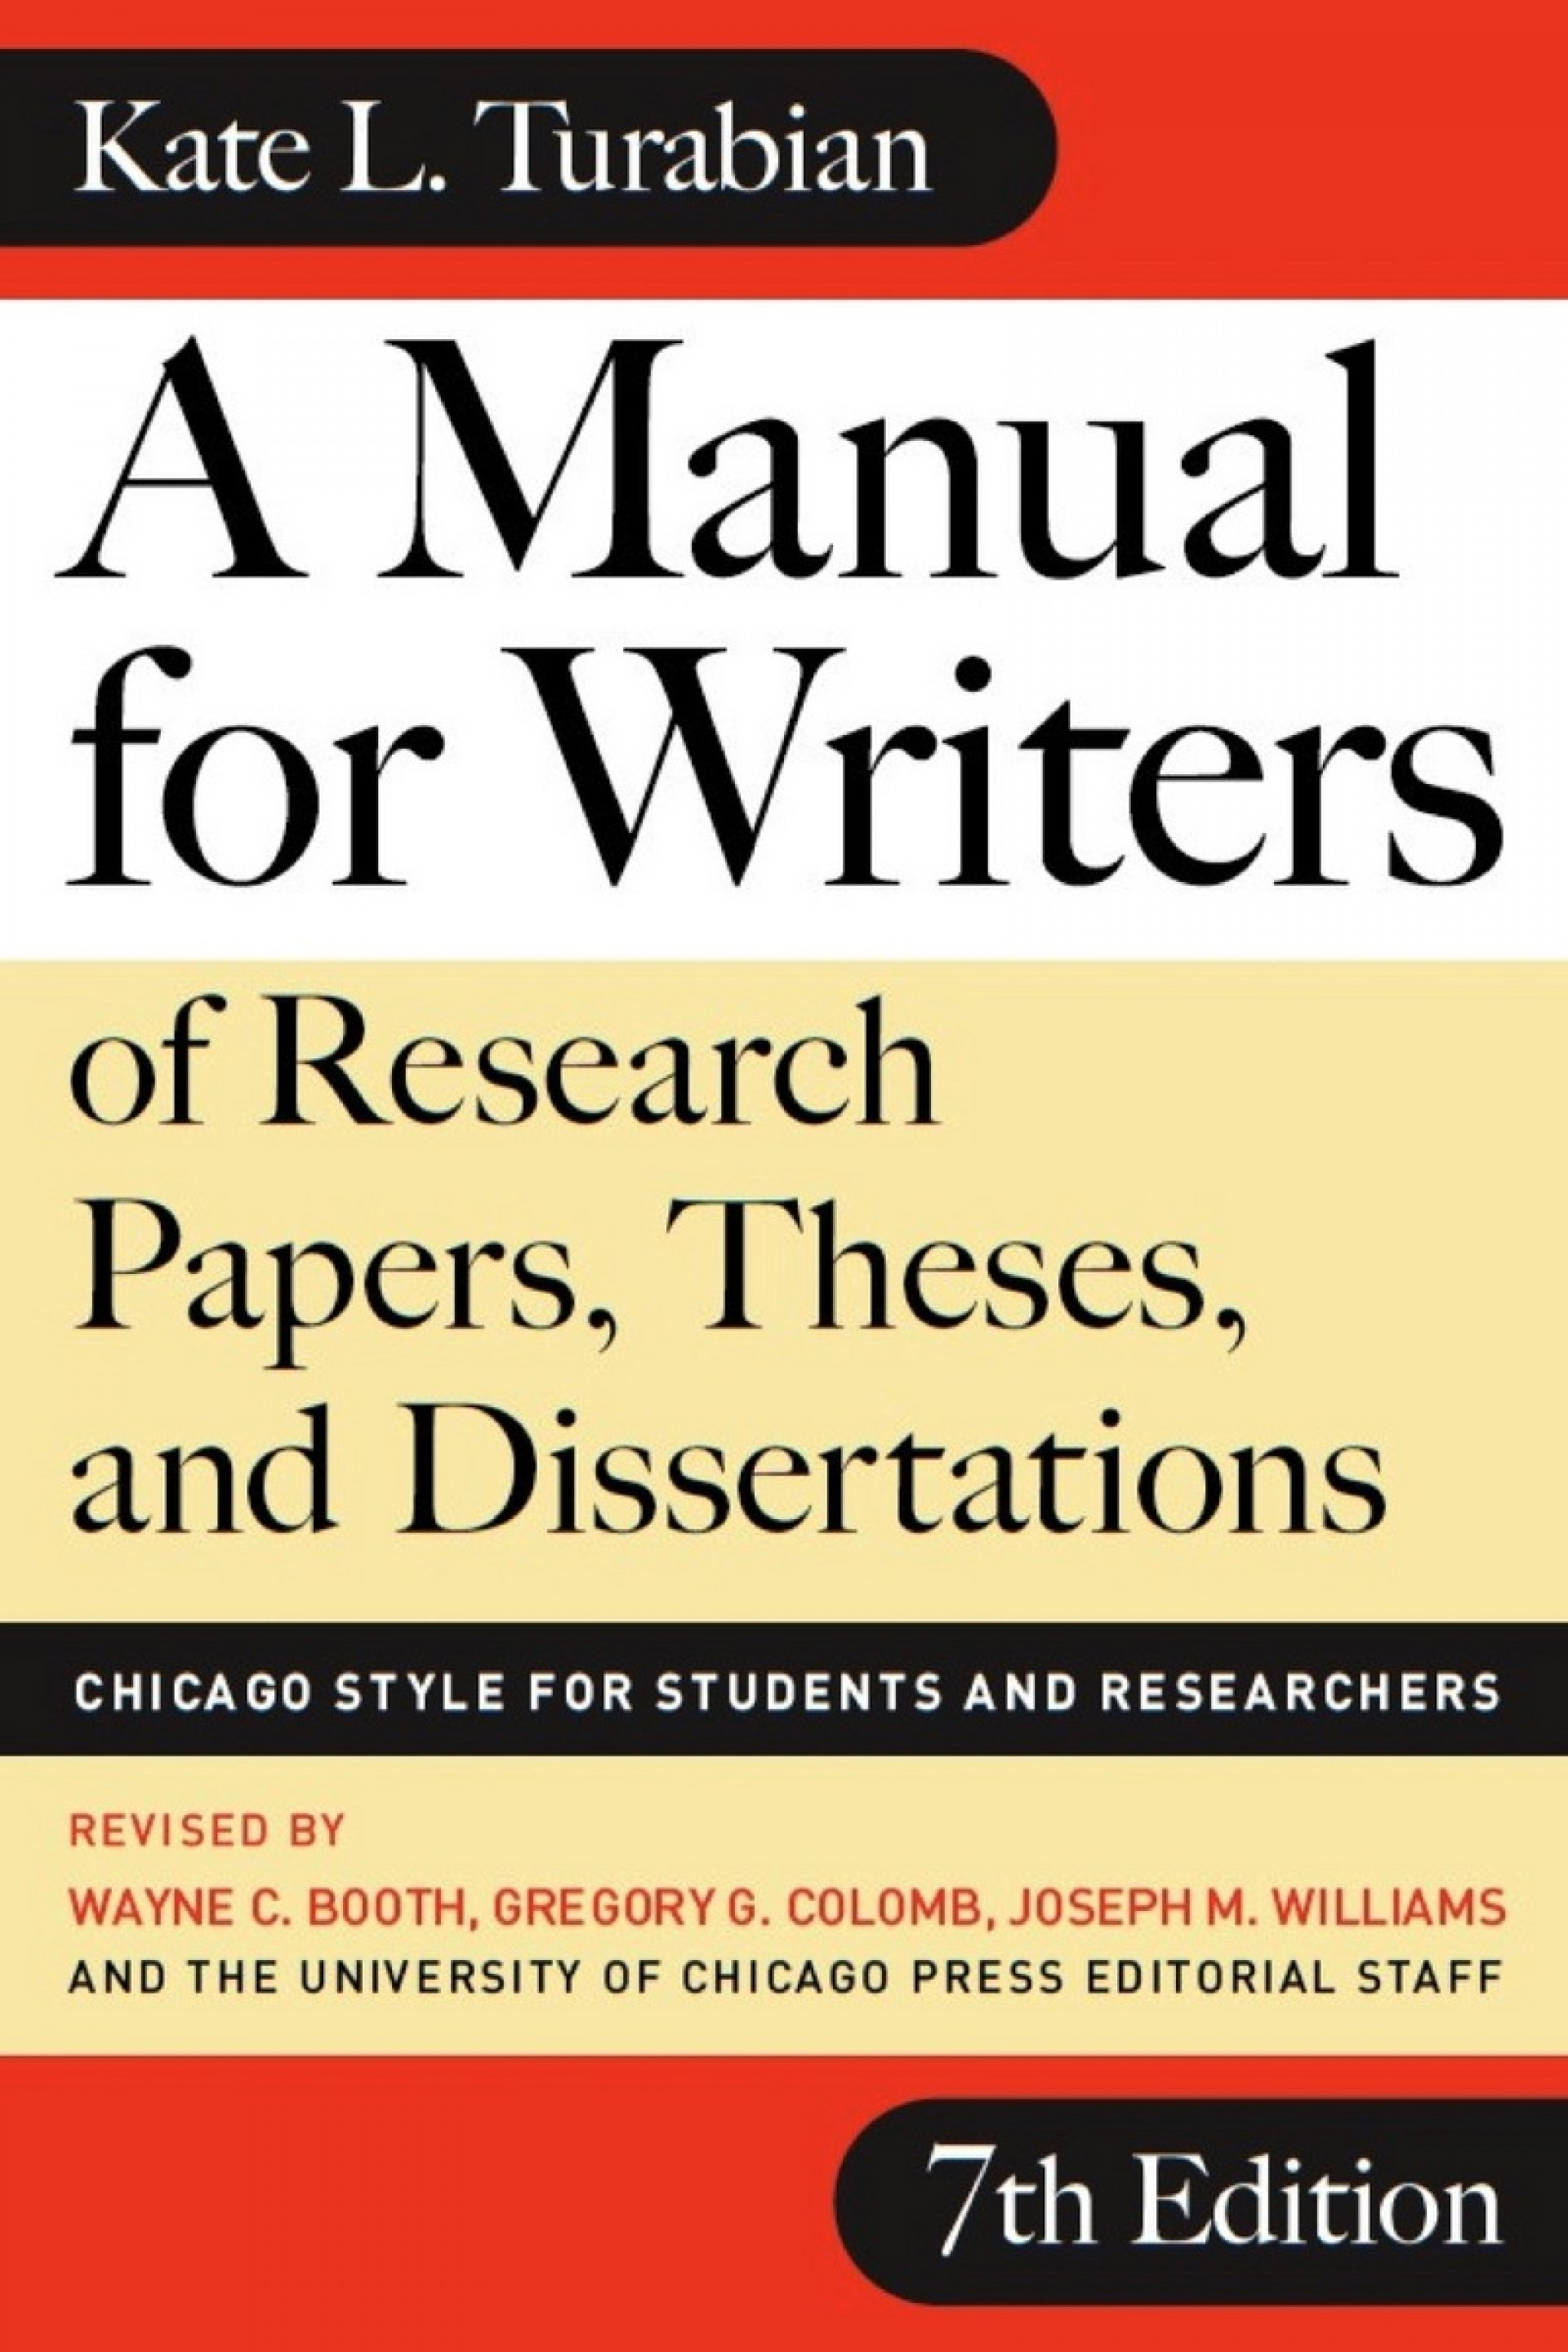 008 Manual For Writers Of Researchs Theses And Dissertations Frontcover Magnificent Research Papers A Amazon 9th Edition Pdf 8th 13 1920